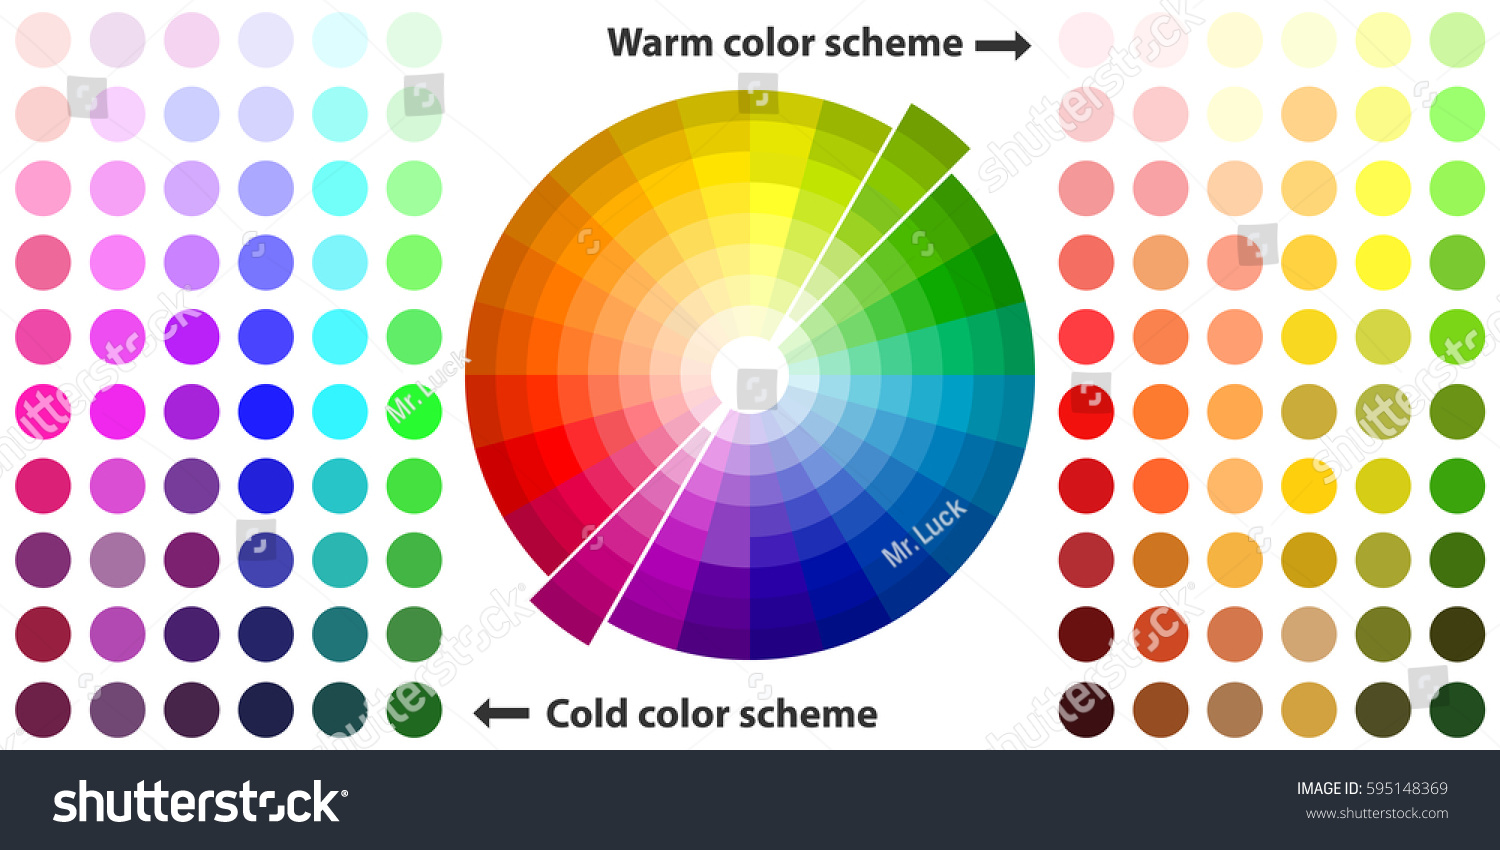 Color Palette Color Schemes Warm Colors Stock Vector